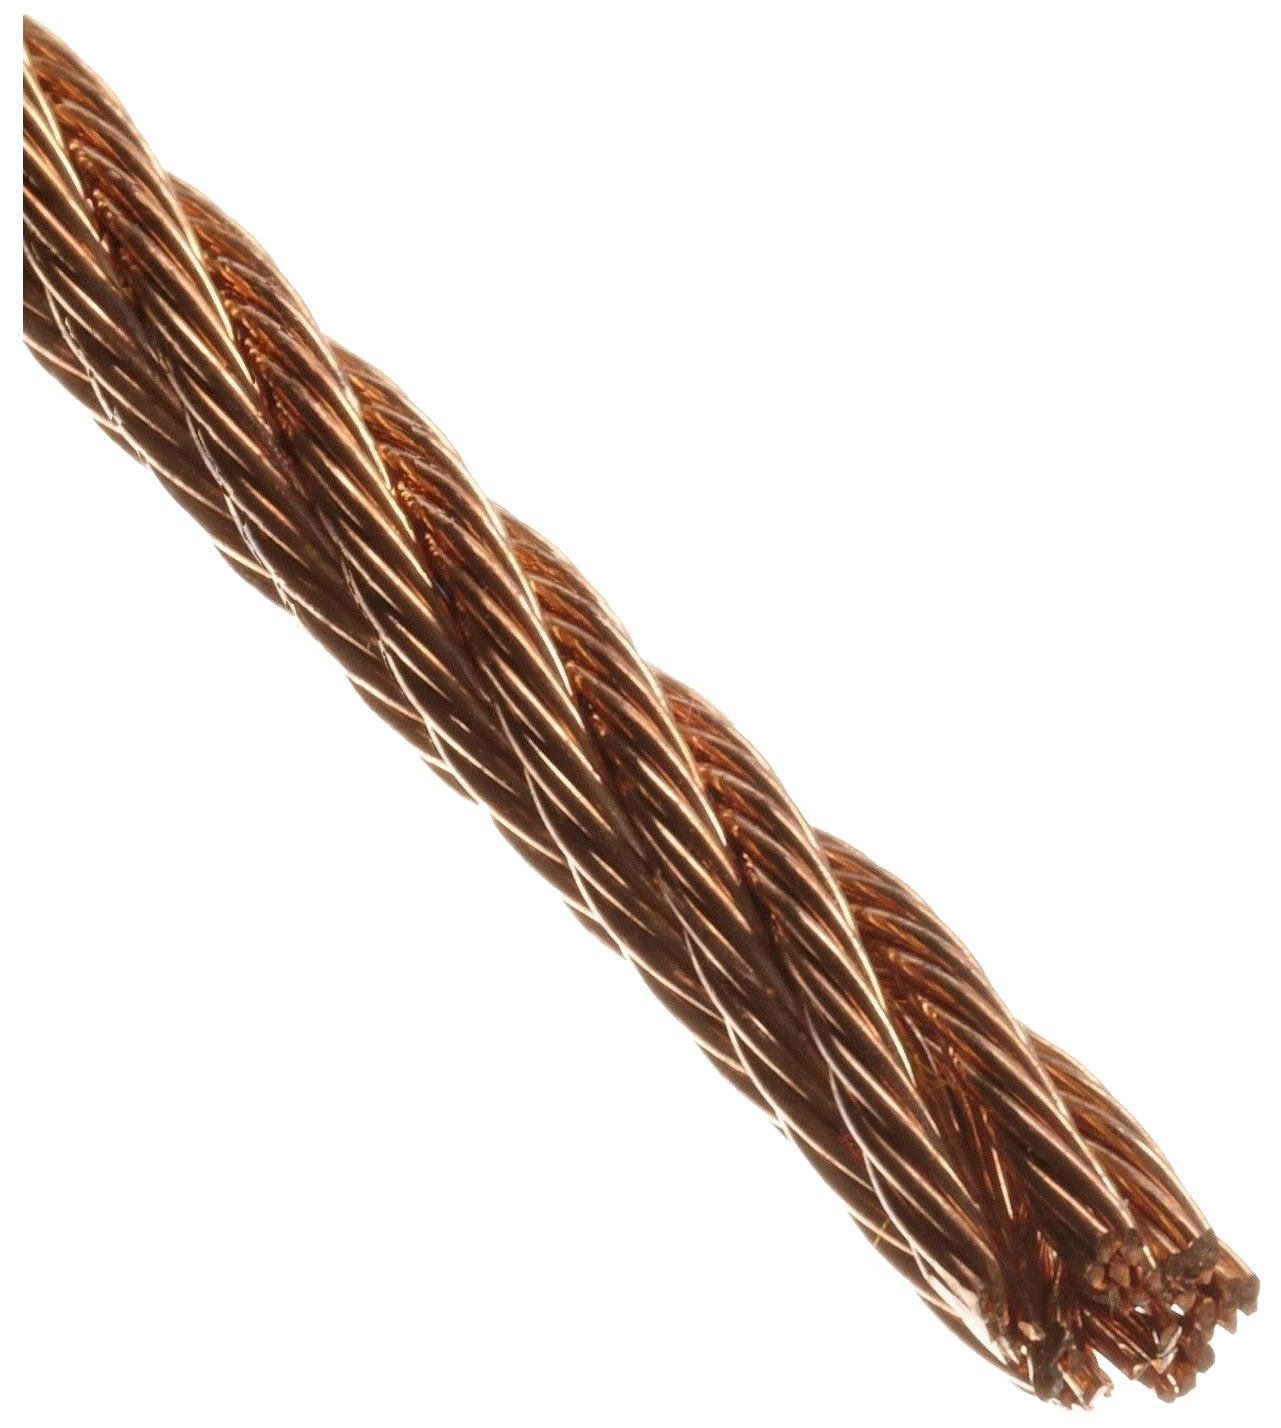 Bare rope stranded copper wire electronic component wire amazon bare rope stranded copper wire electronic component wire amazon industrial scientific keyboard keysfo Gallery